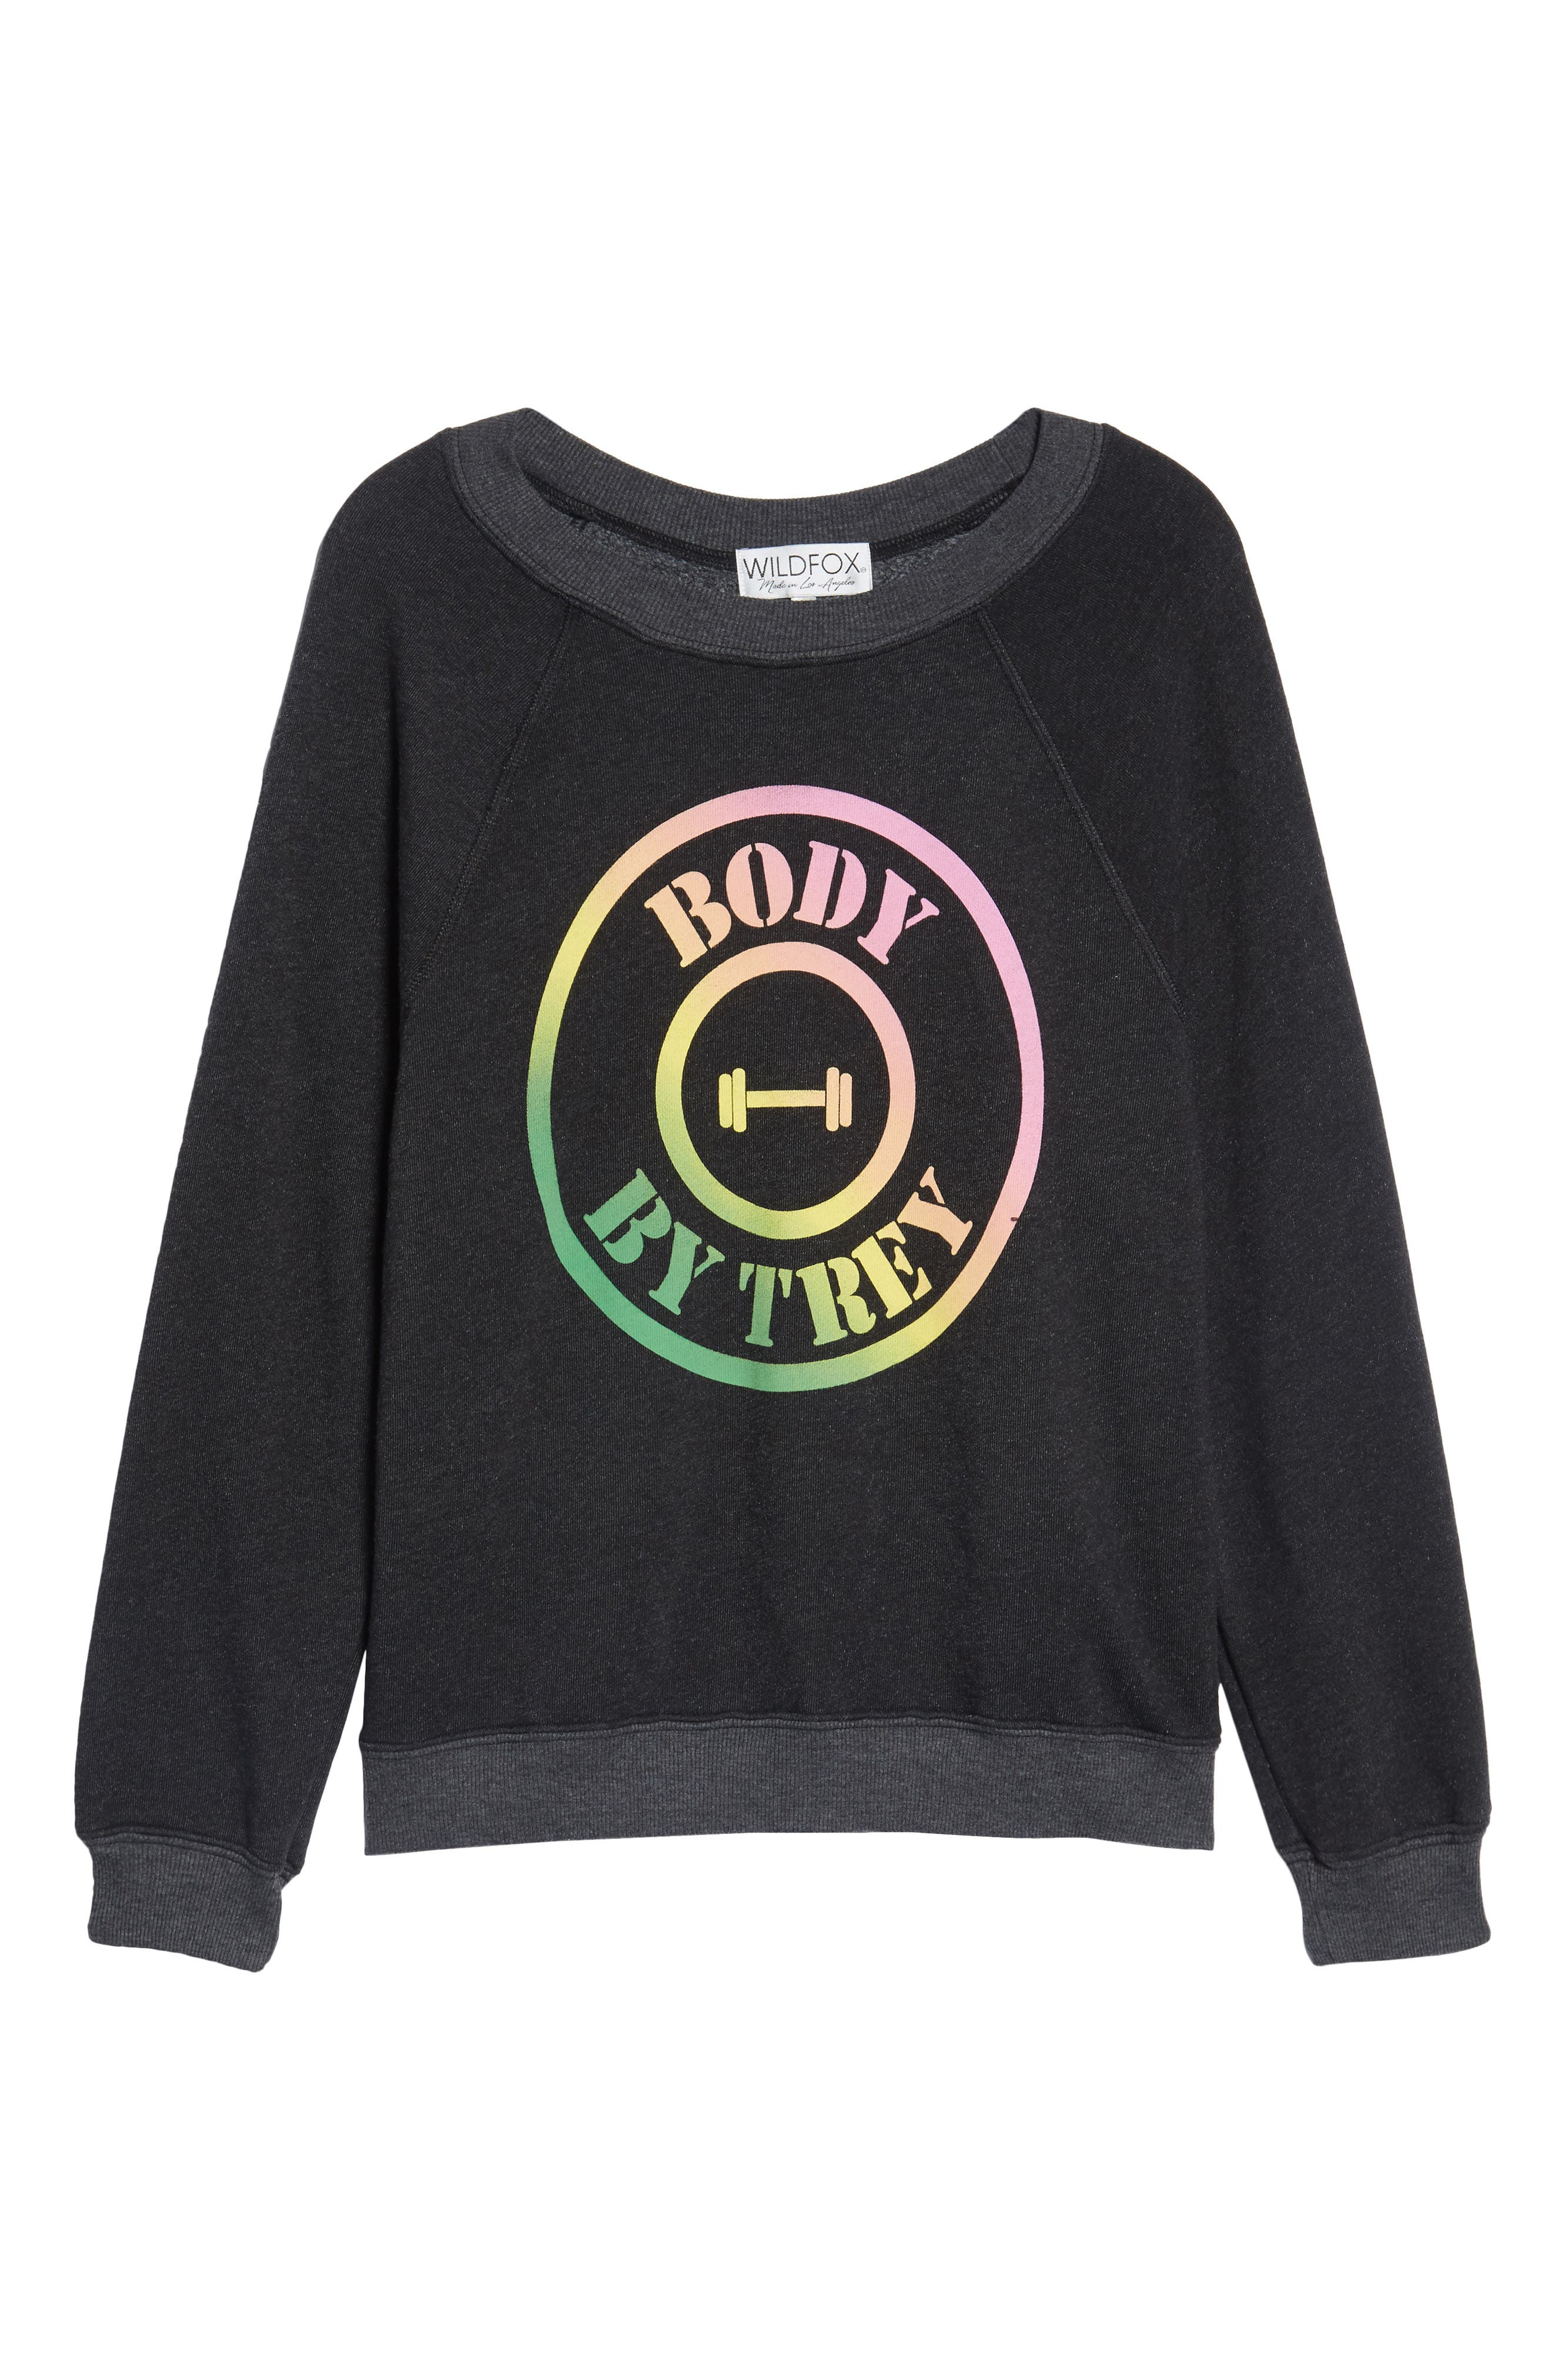 Body by Trey - Sommers Sweatshirt,                             Alternate thumbnail 6, color,